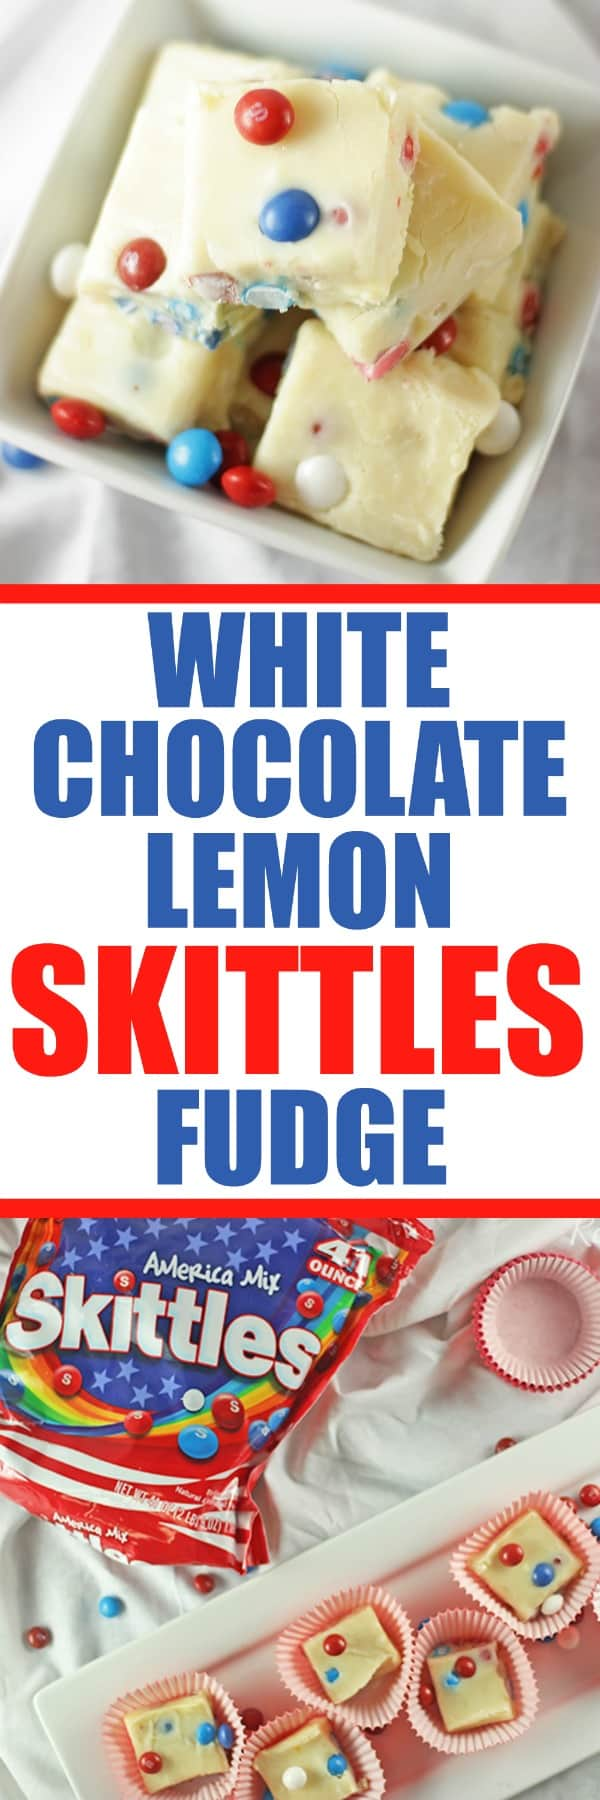 White Chocolate Lemon Skittles Fudge Recipe RoseBakes #ad #tastetherainbow #SkittlesAmericaMix #CollectiveBias